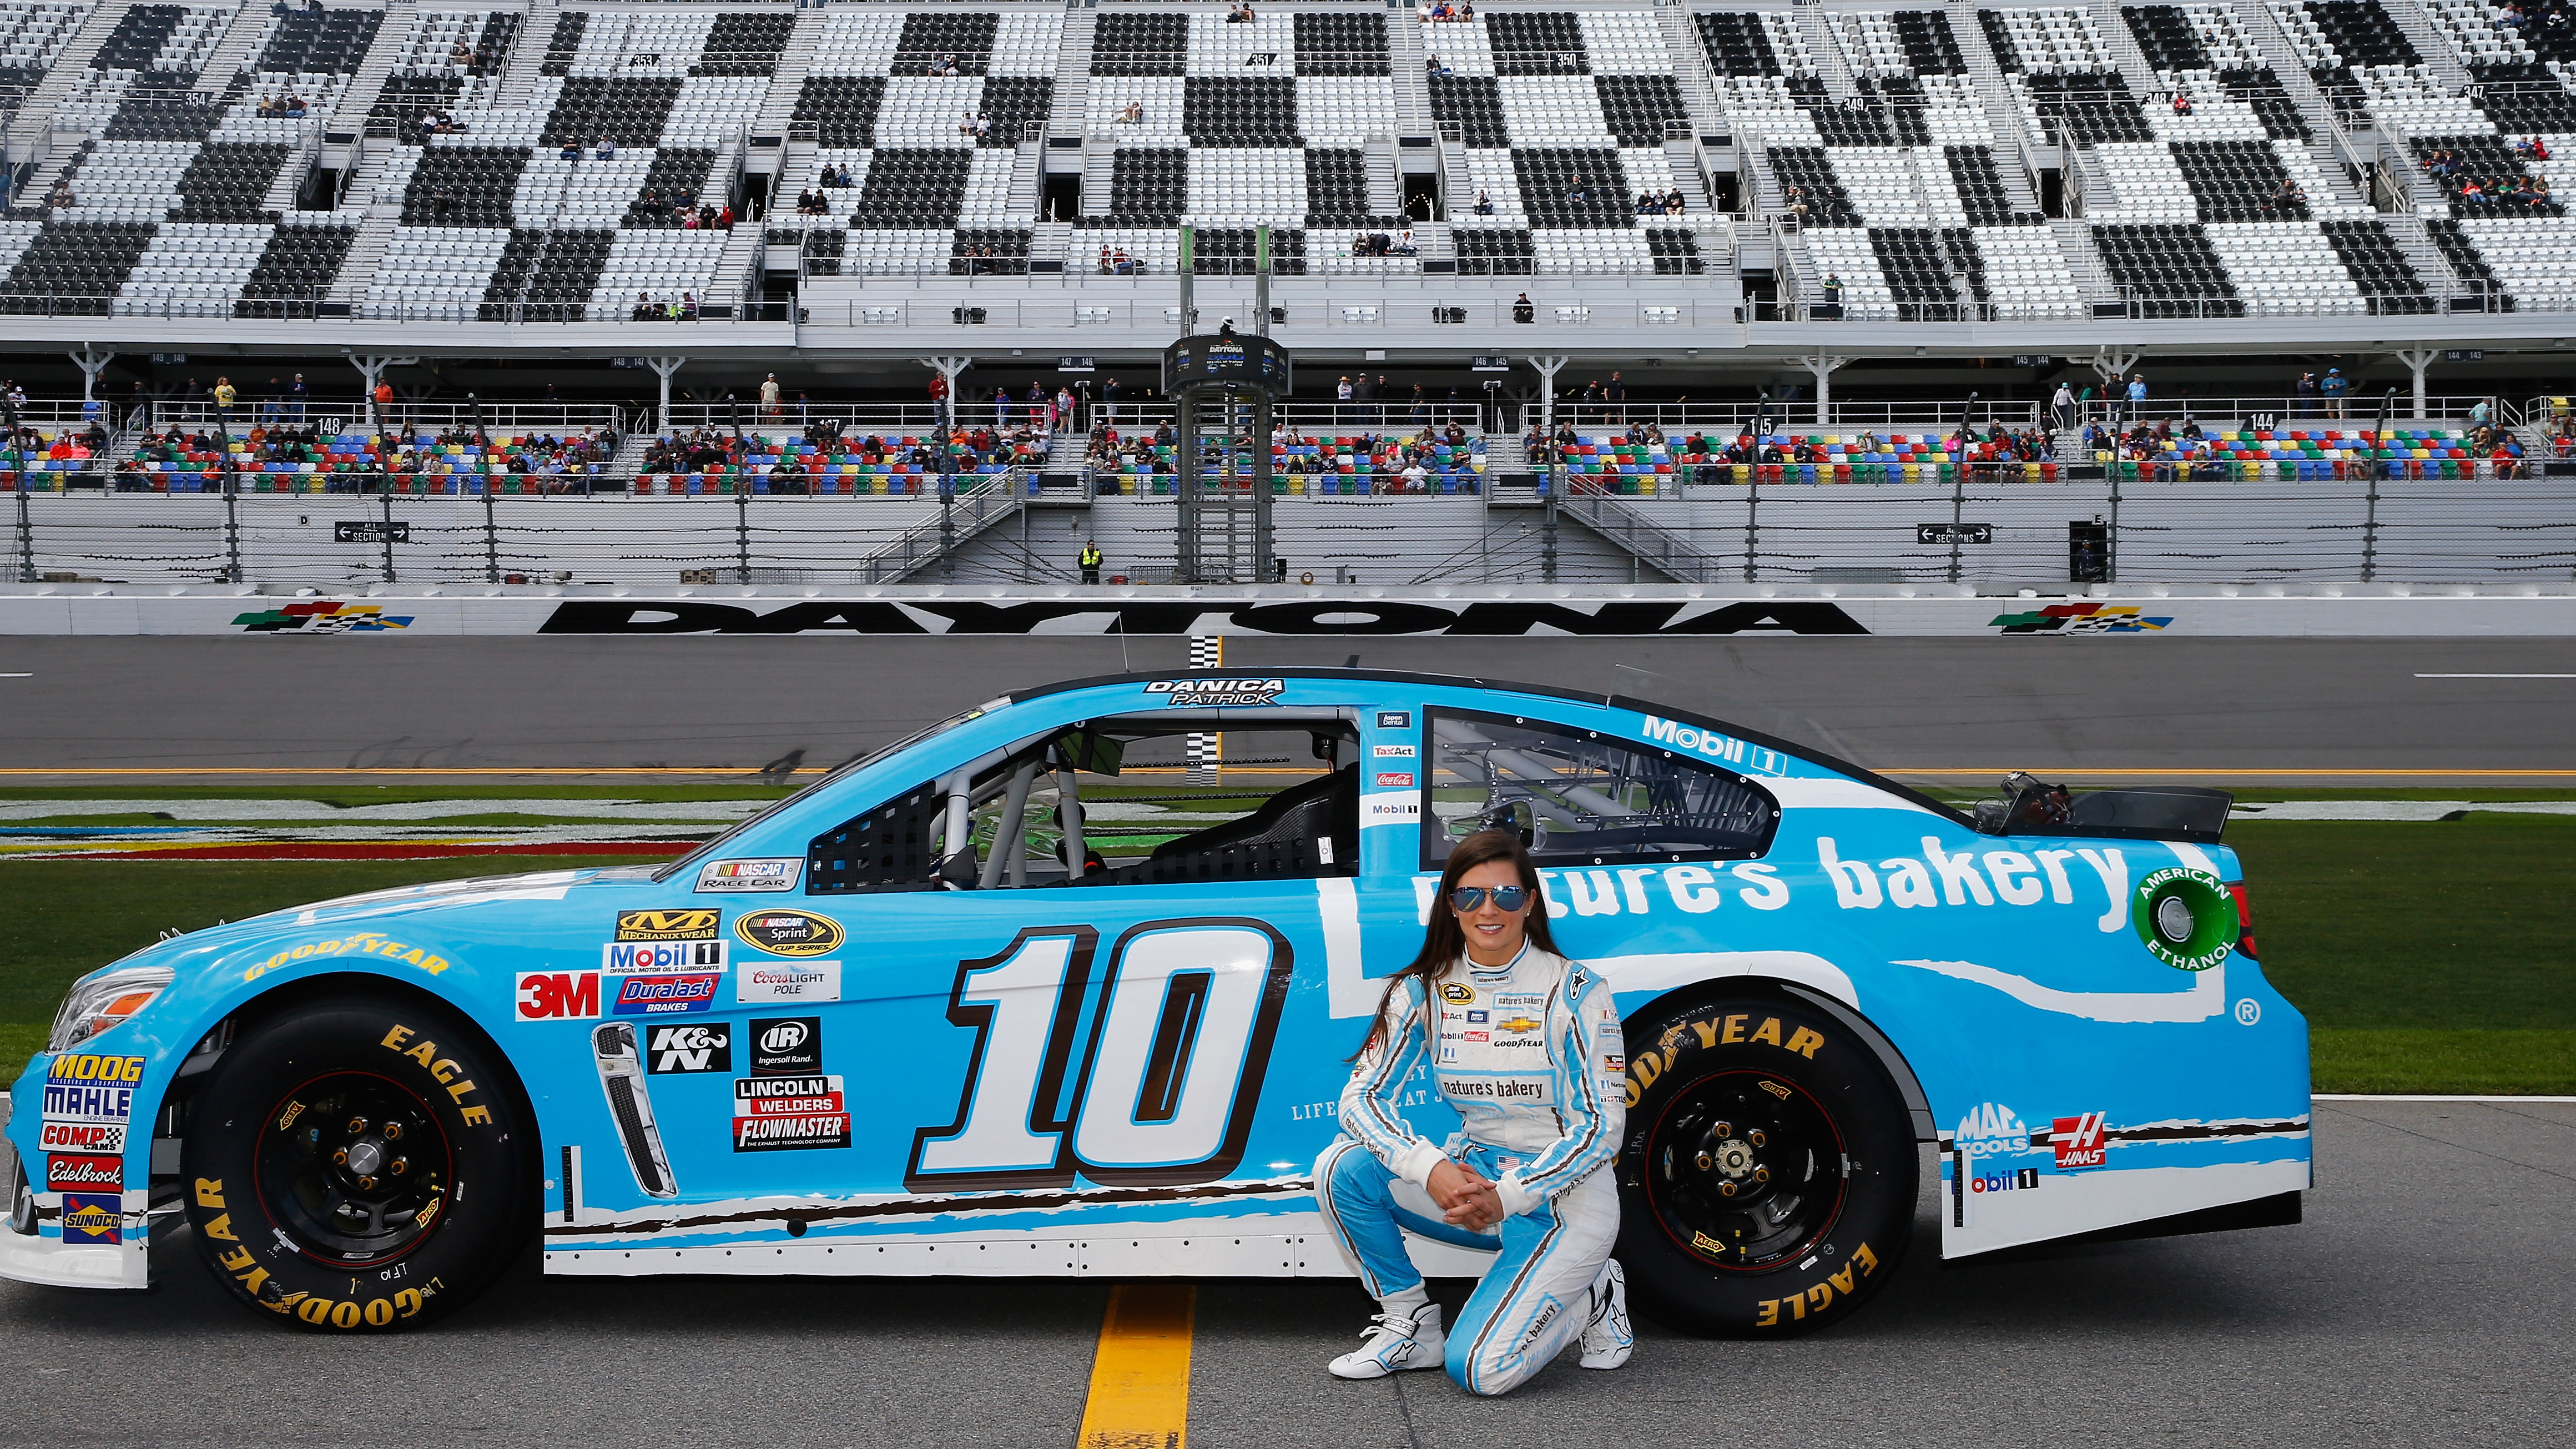 13-21 February, 2016, Daytona Beach, Florida USA   Danica Patrick, driver of the #10 Nature's Bakery Chevrolet, poses with her car after qualifying for the NASCAR Sprint Cup Series Daytona 500 at Daytona International Speedway on February 14, 2016 in Daytona Beach, Florida.   LAT Photo USA via NASCAR via Getty Images